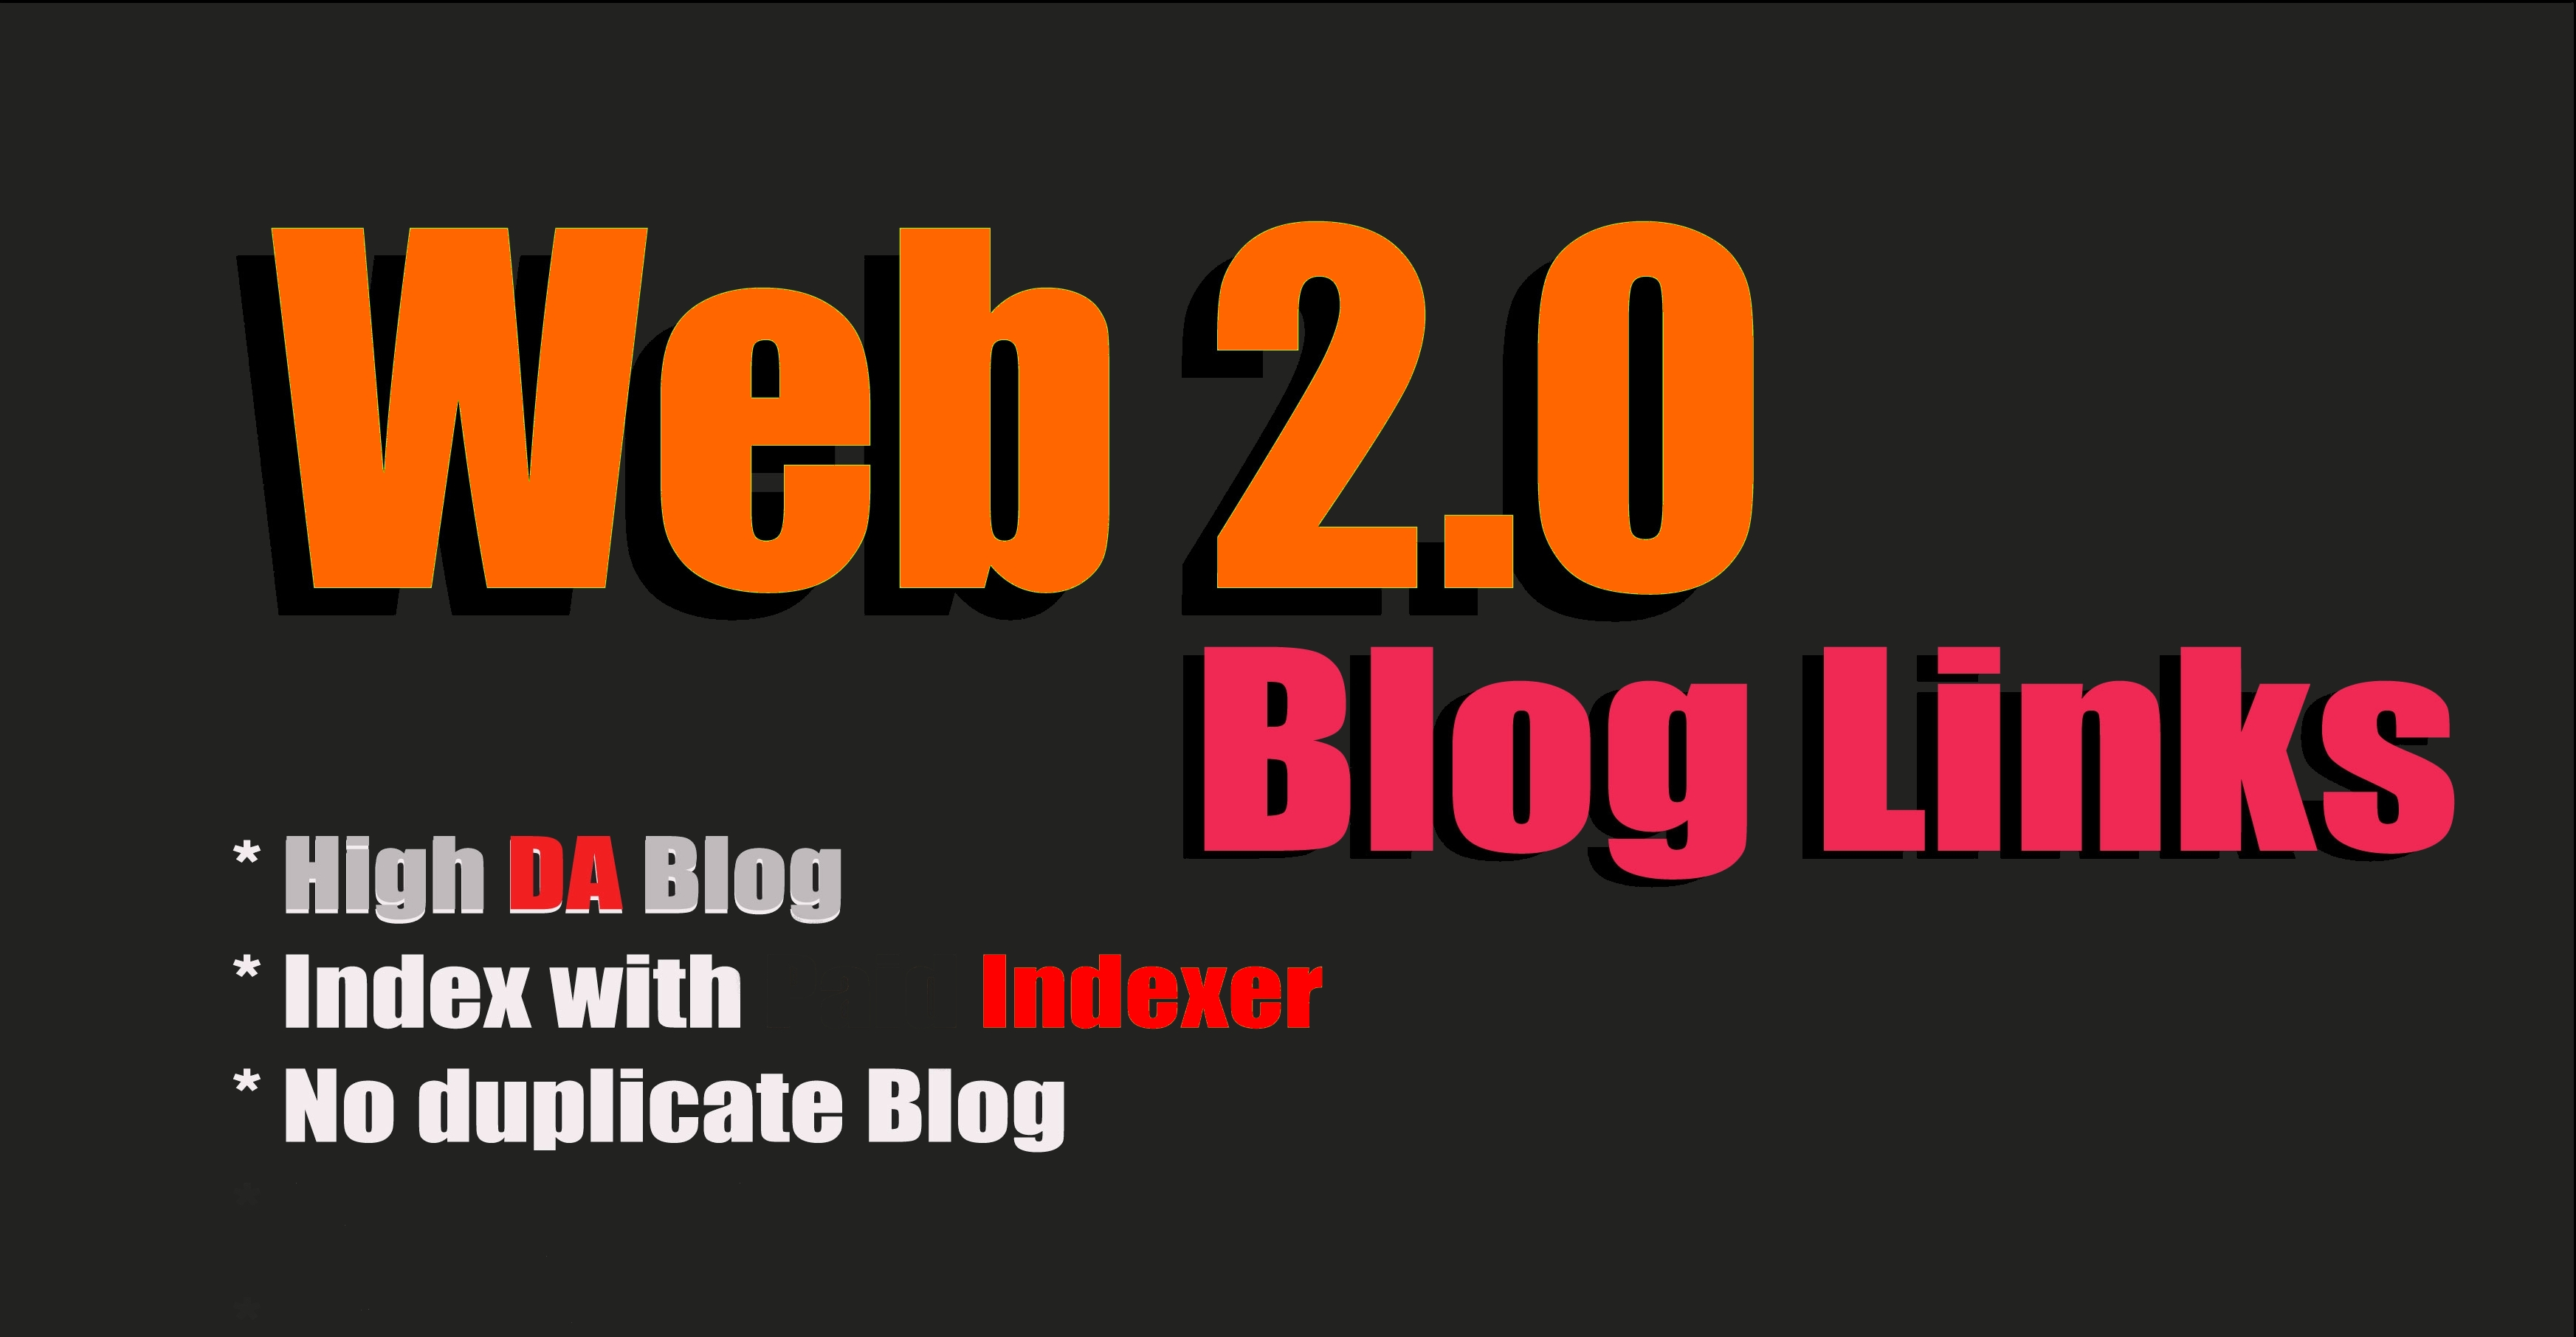 Build 50+ High Quality Web2.0 Blogs high DA+40